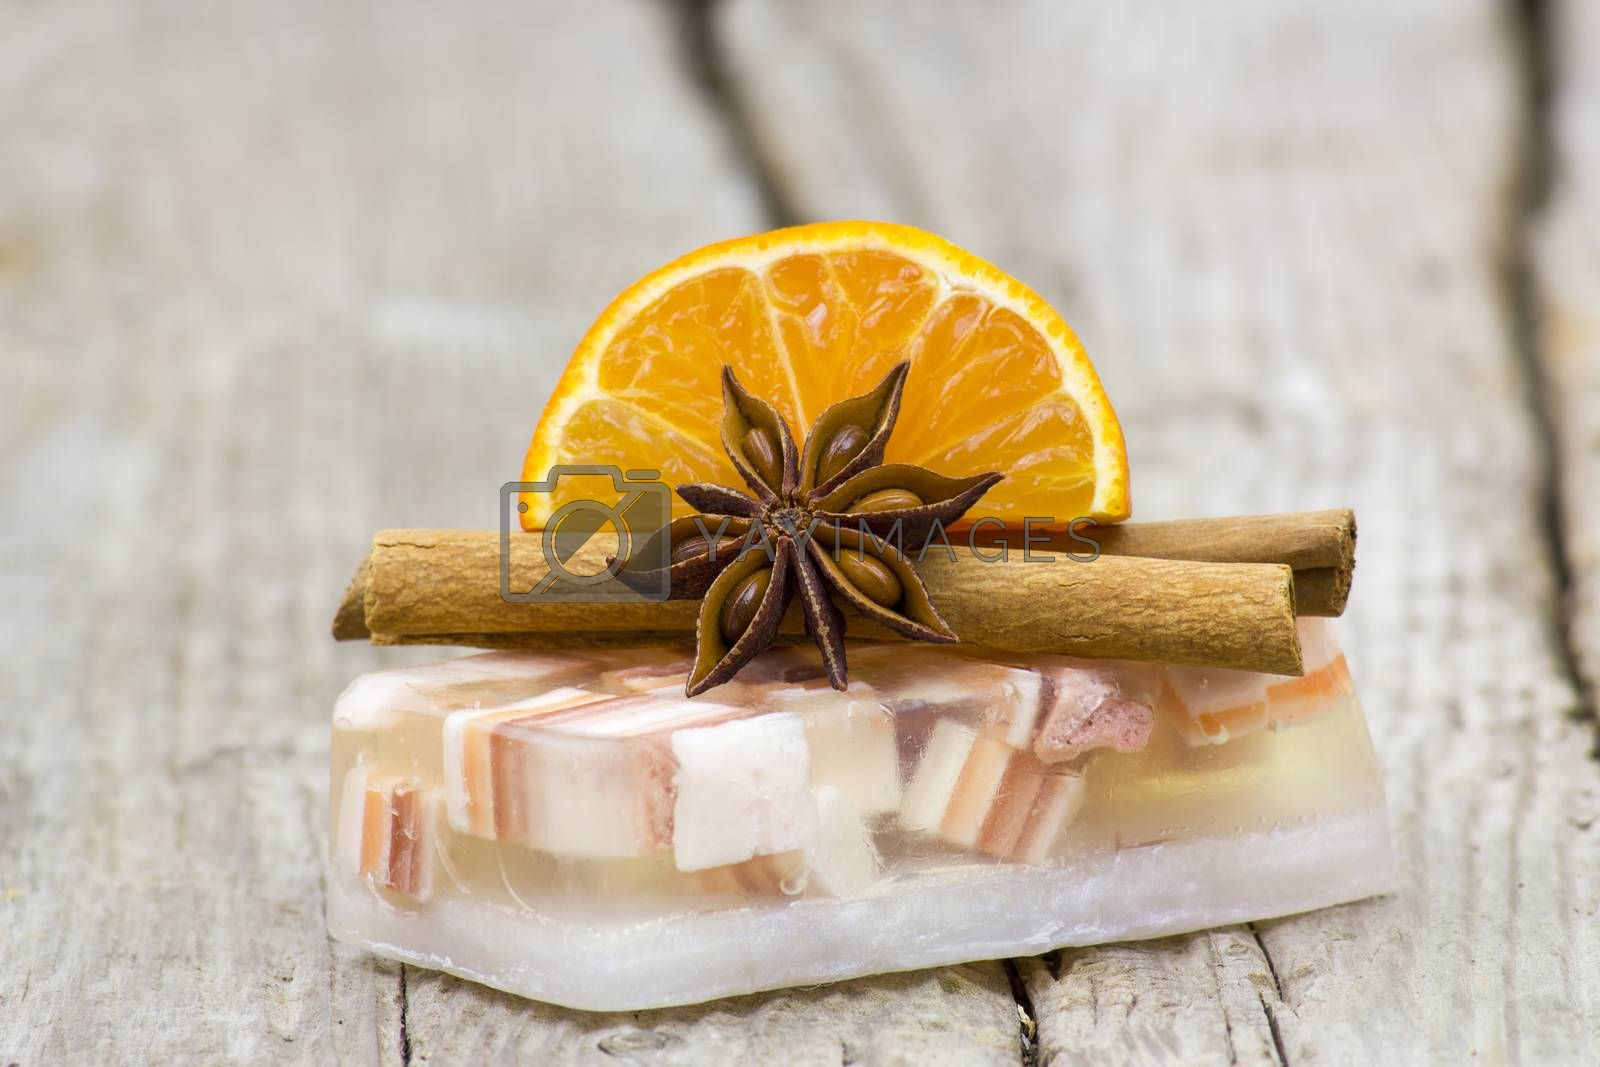 aromatic glycerin soap, orange and spices on wooden background